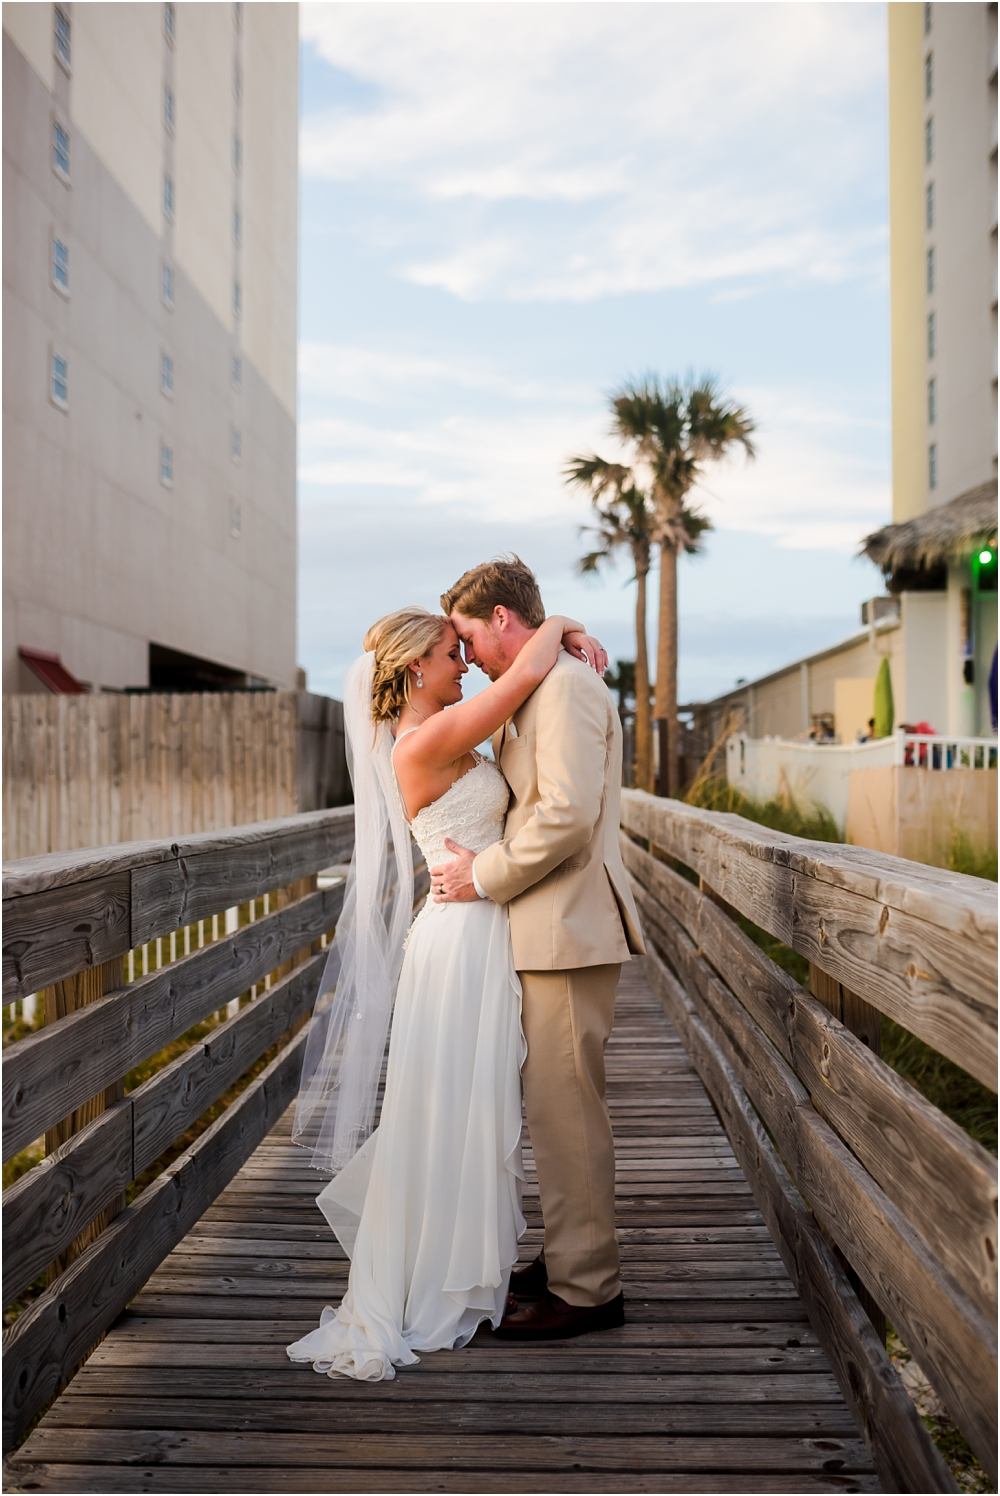 dillard-florida-wedding-photographer-panama-city-beach-dothan-tallahassee-kiersten-grant-photography-162.jpg